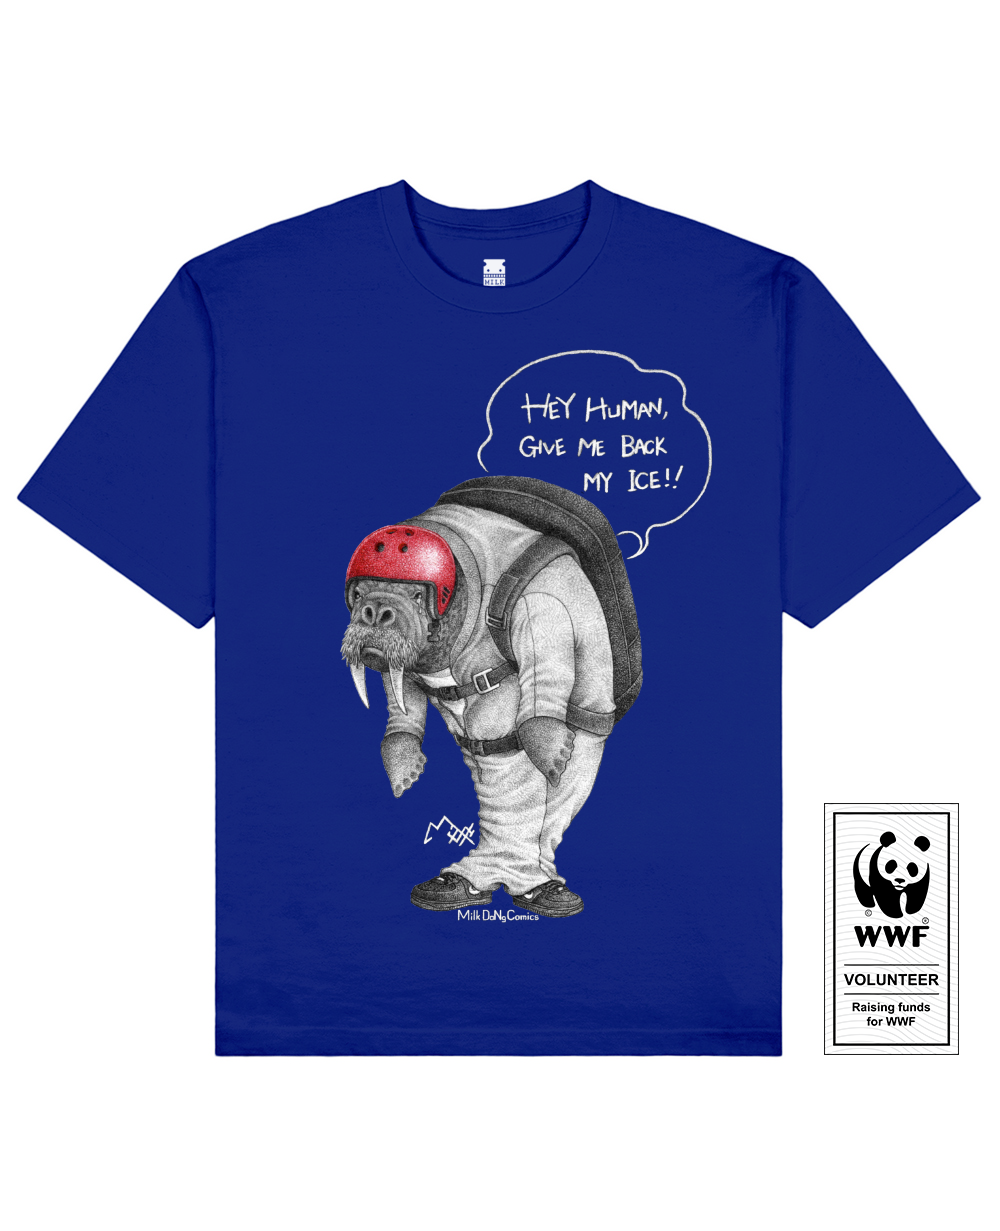 CLIFFJUMPING WALRUS Printed T-Shirt in Blue - T-Shirts - Milk DoNg Comics - BRANMA